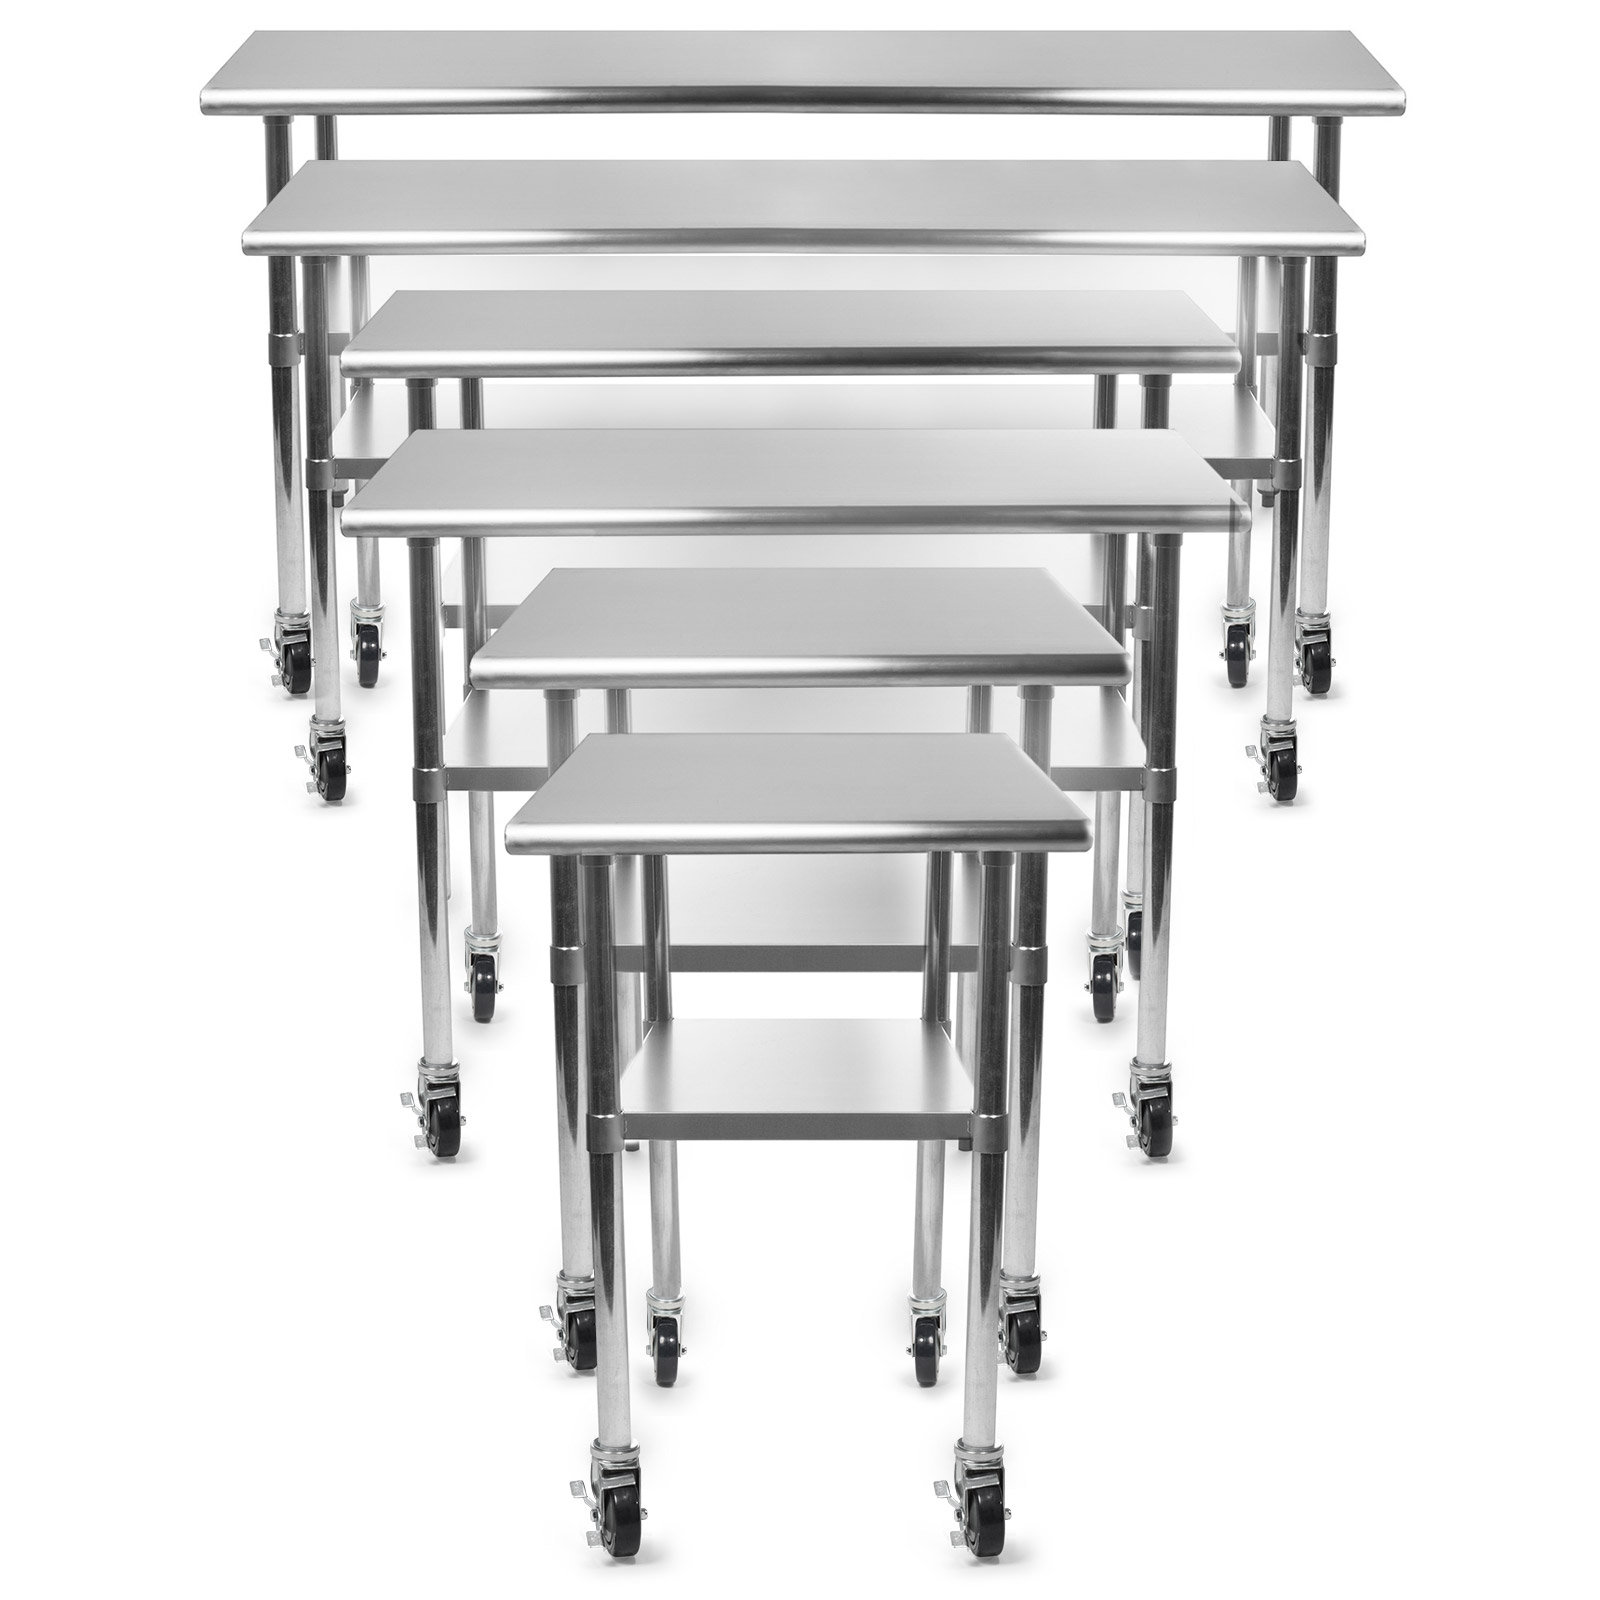 kitchen prep table pot sets gridmann nsf stainless steel commercial work w 4 casters multiple